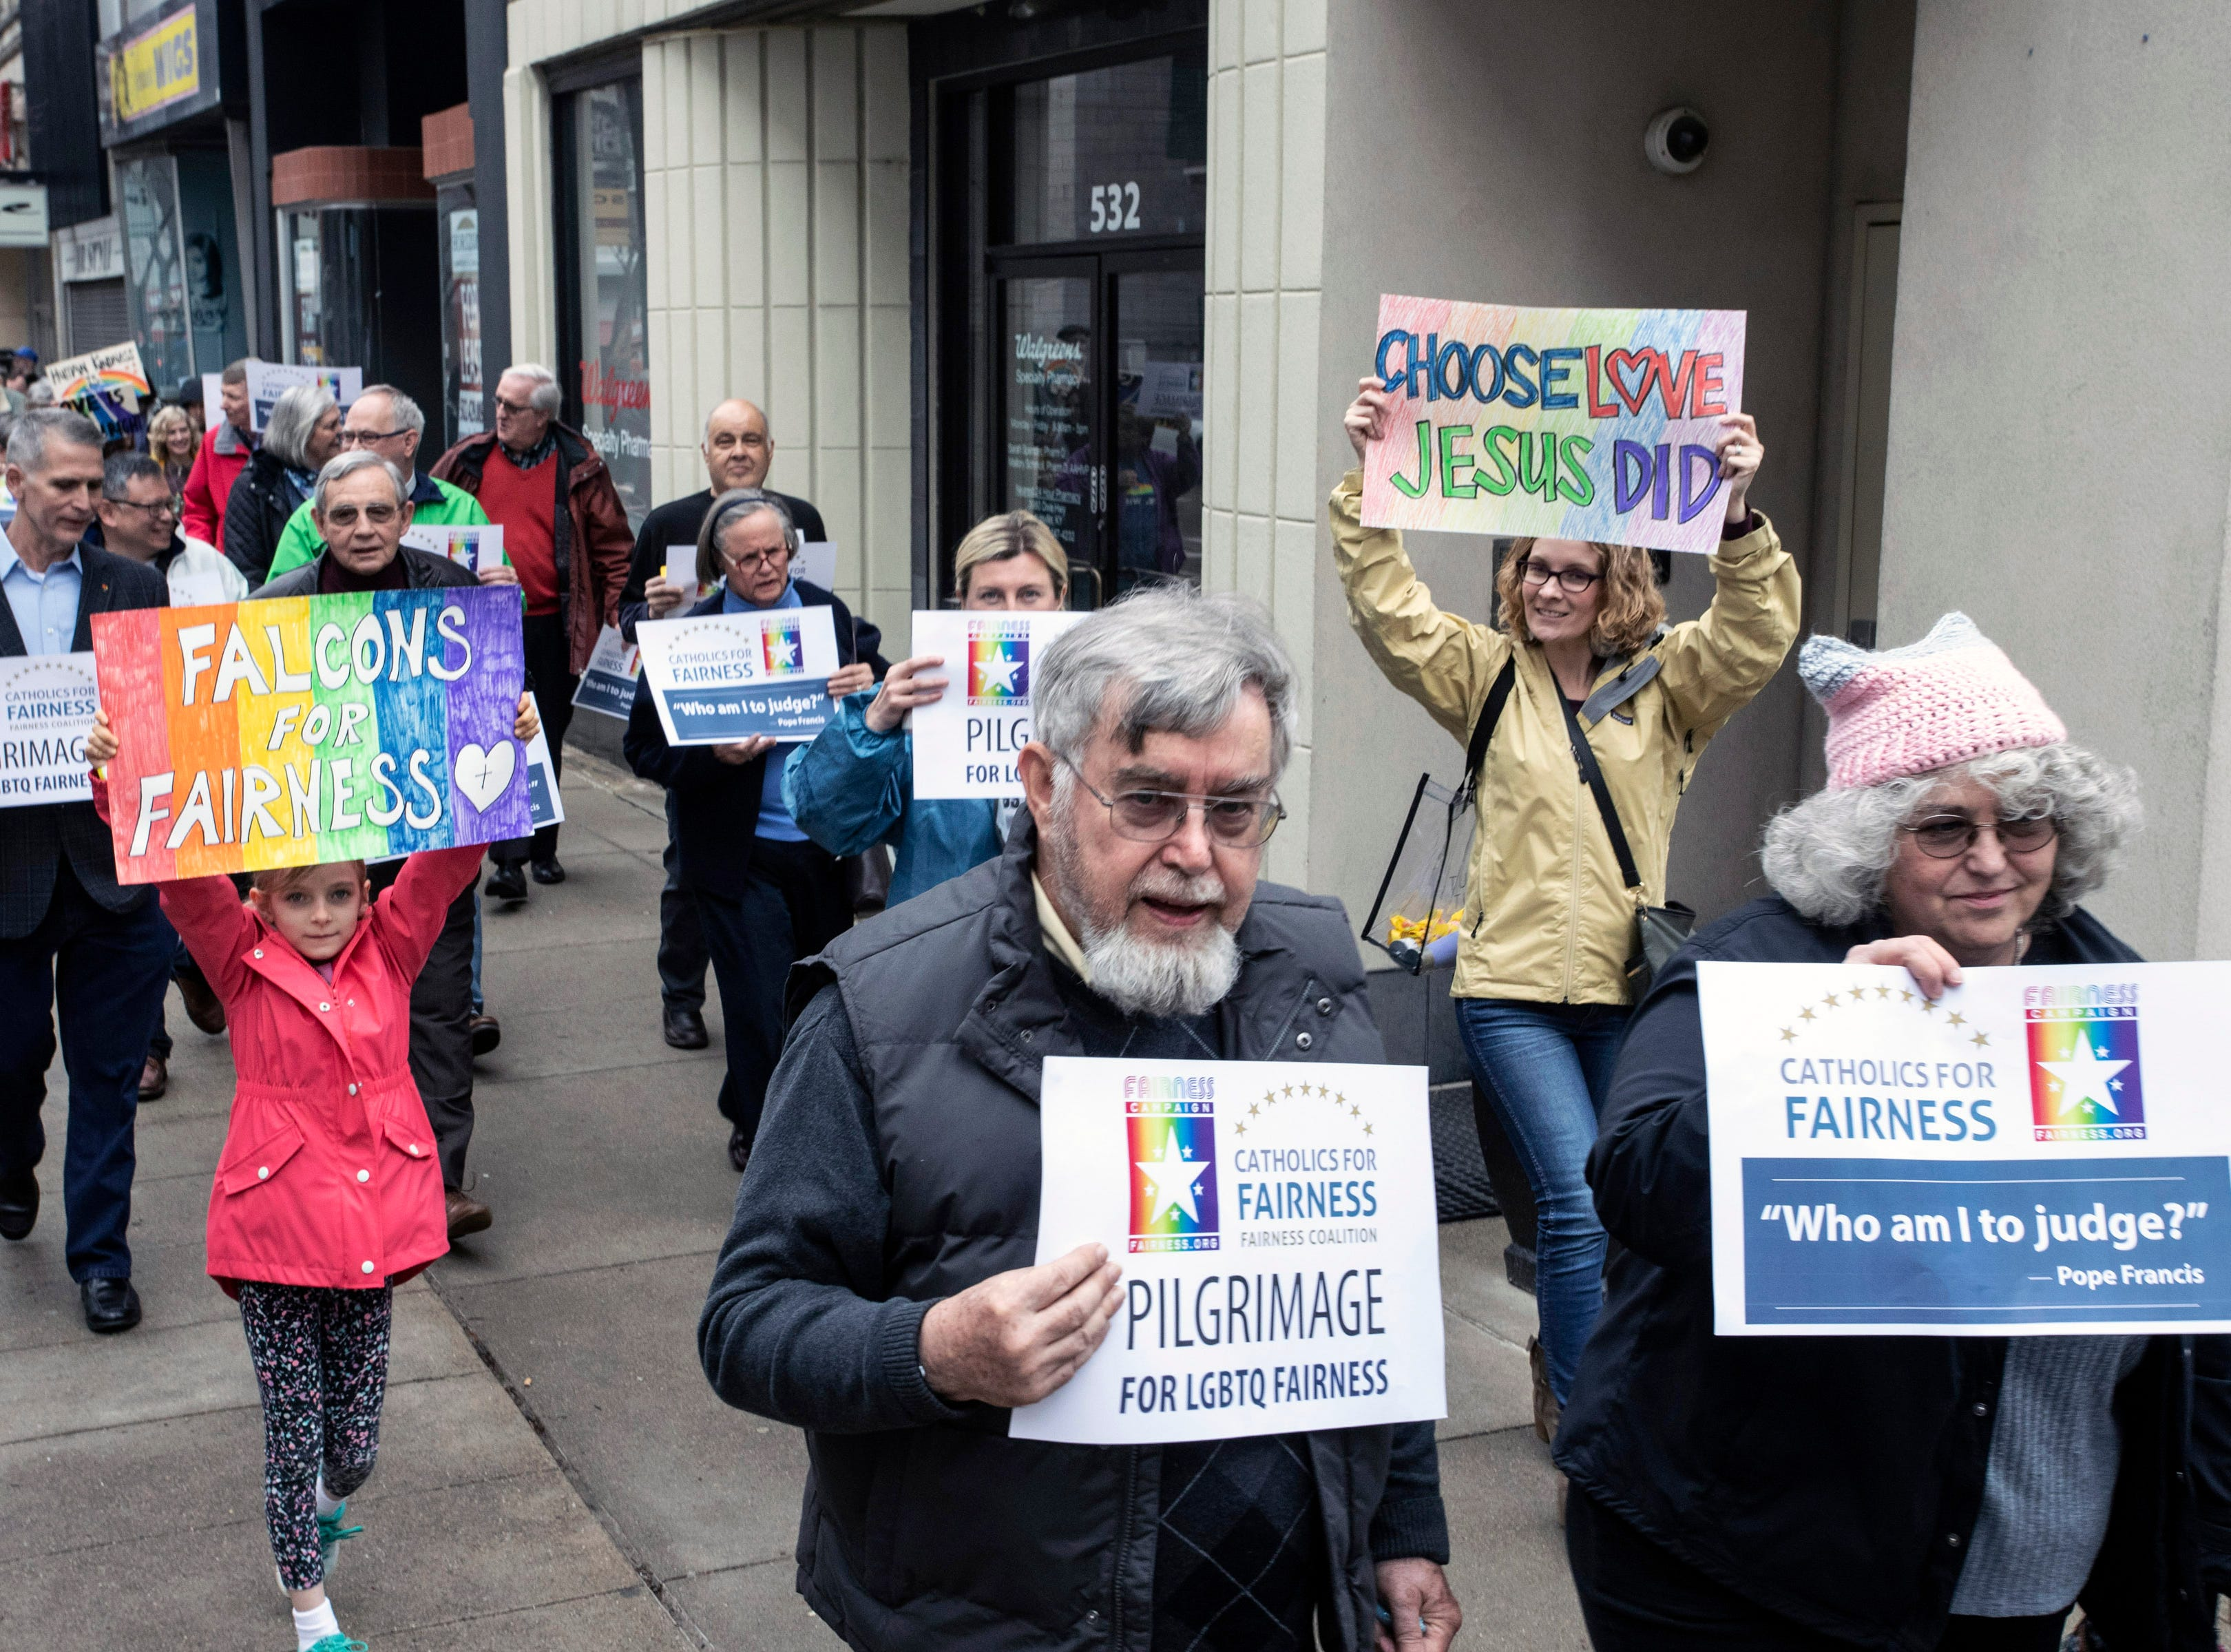 The annual Catholics for Fairness Pilgrimage marched from the Volunteers of America on South Fourth Street to the Cathedral of the Assumption on Fifth Street Sunday afternoon. March 24, 2019